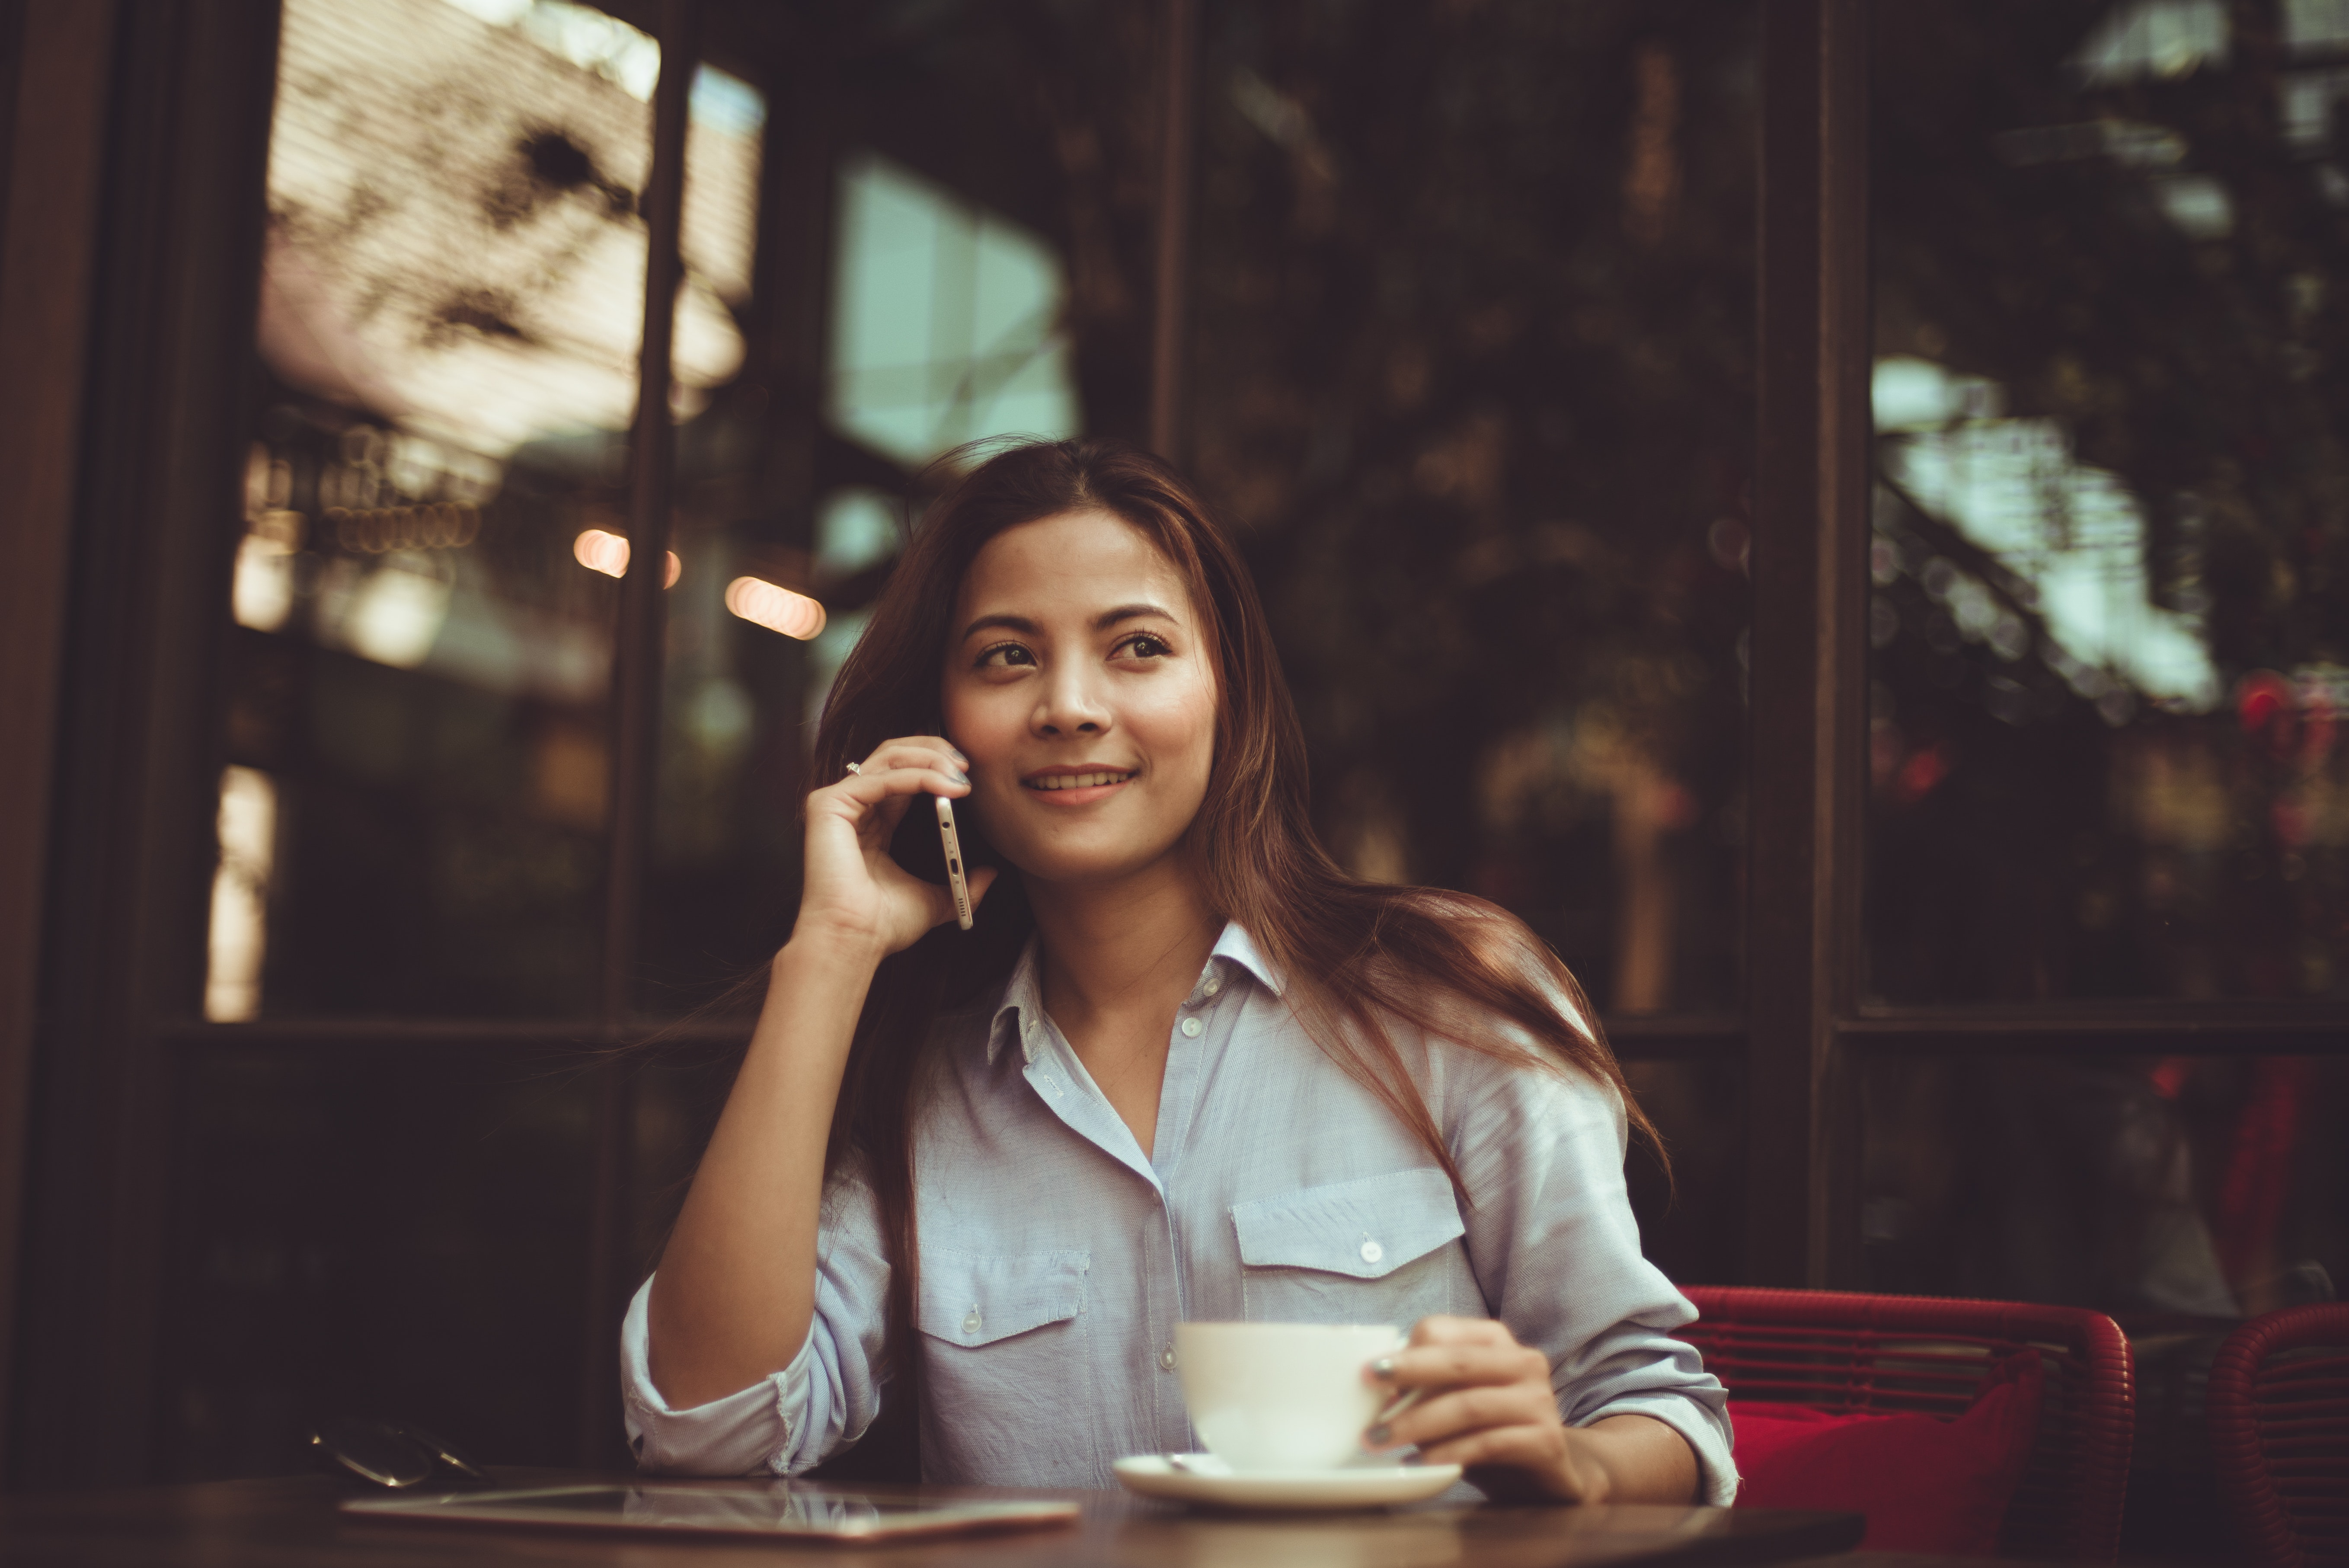 Portrait of Young Woman Using Mobile Phone in Cafe, Girl, Woman, Window, Tea, HQ Photo